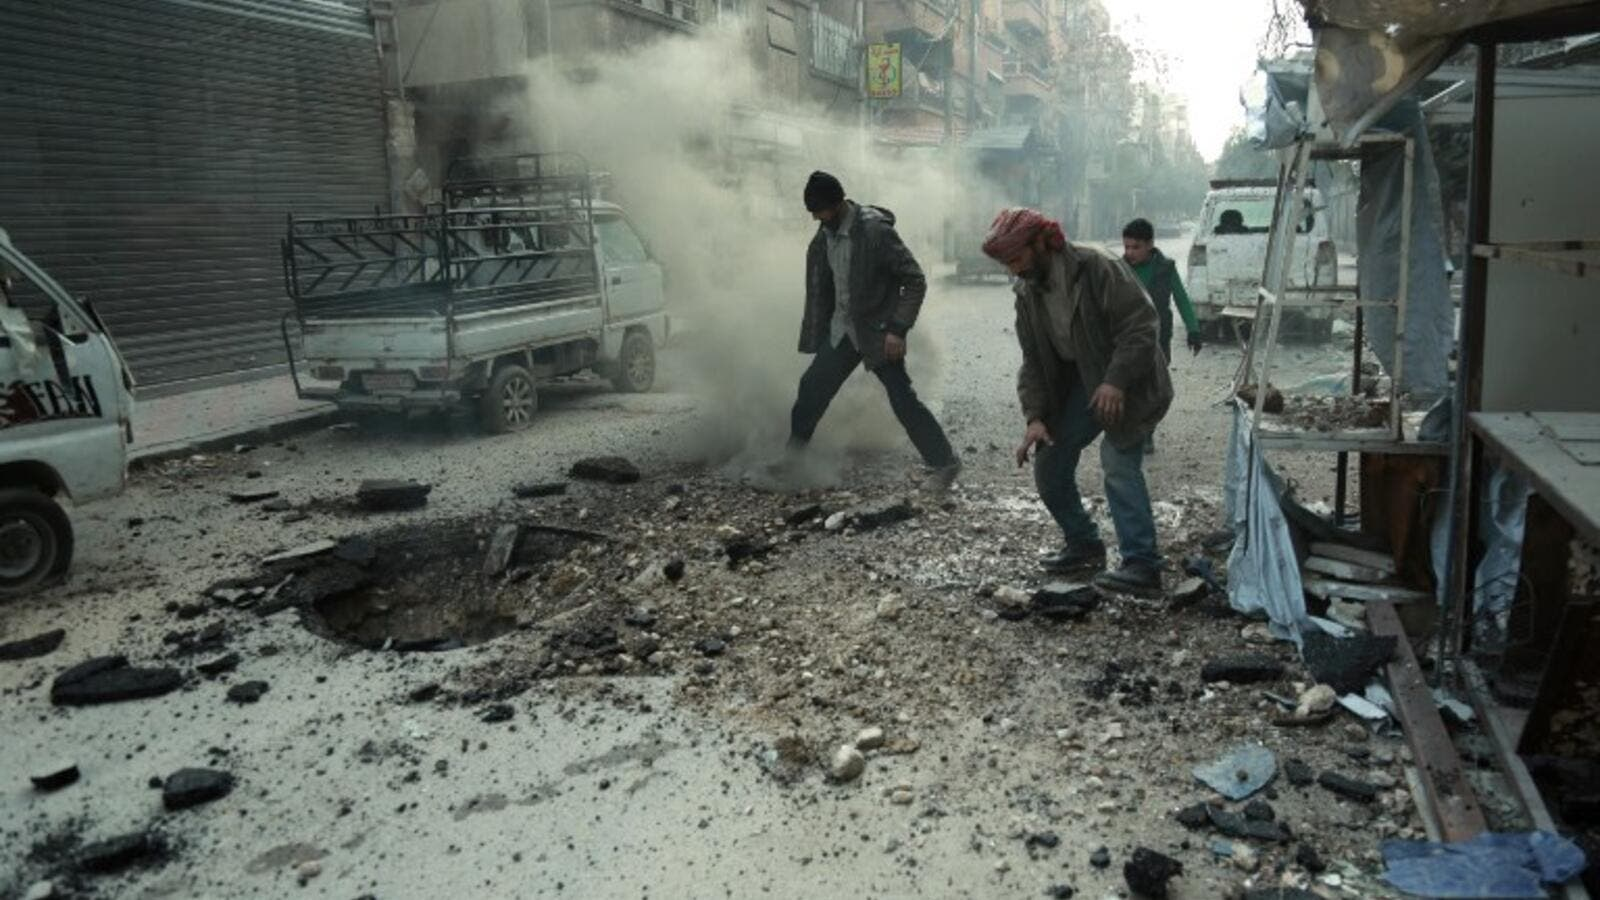 Syrian town of Douma. (AFP/ File Photo)